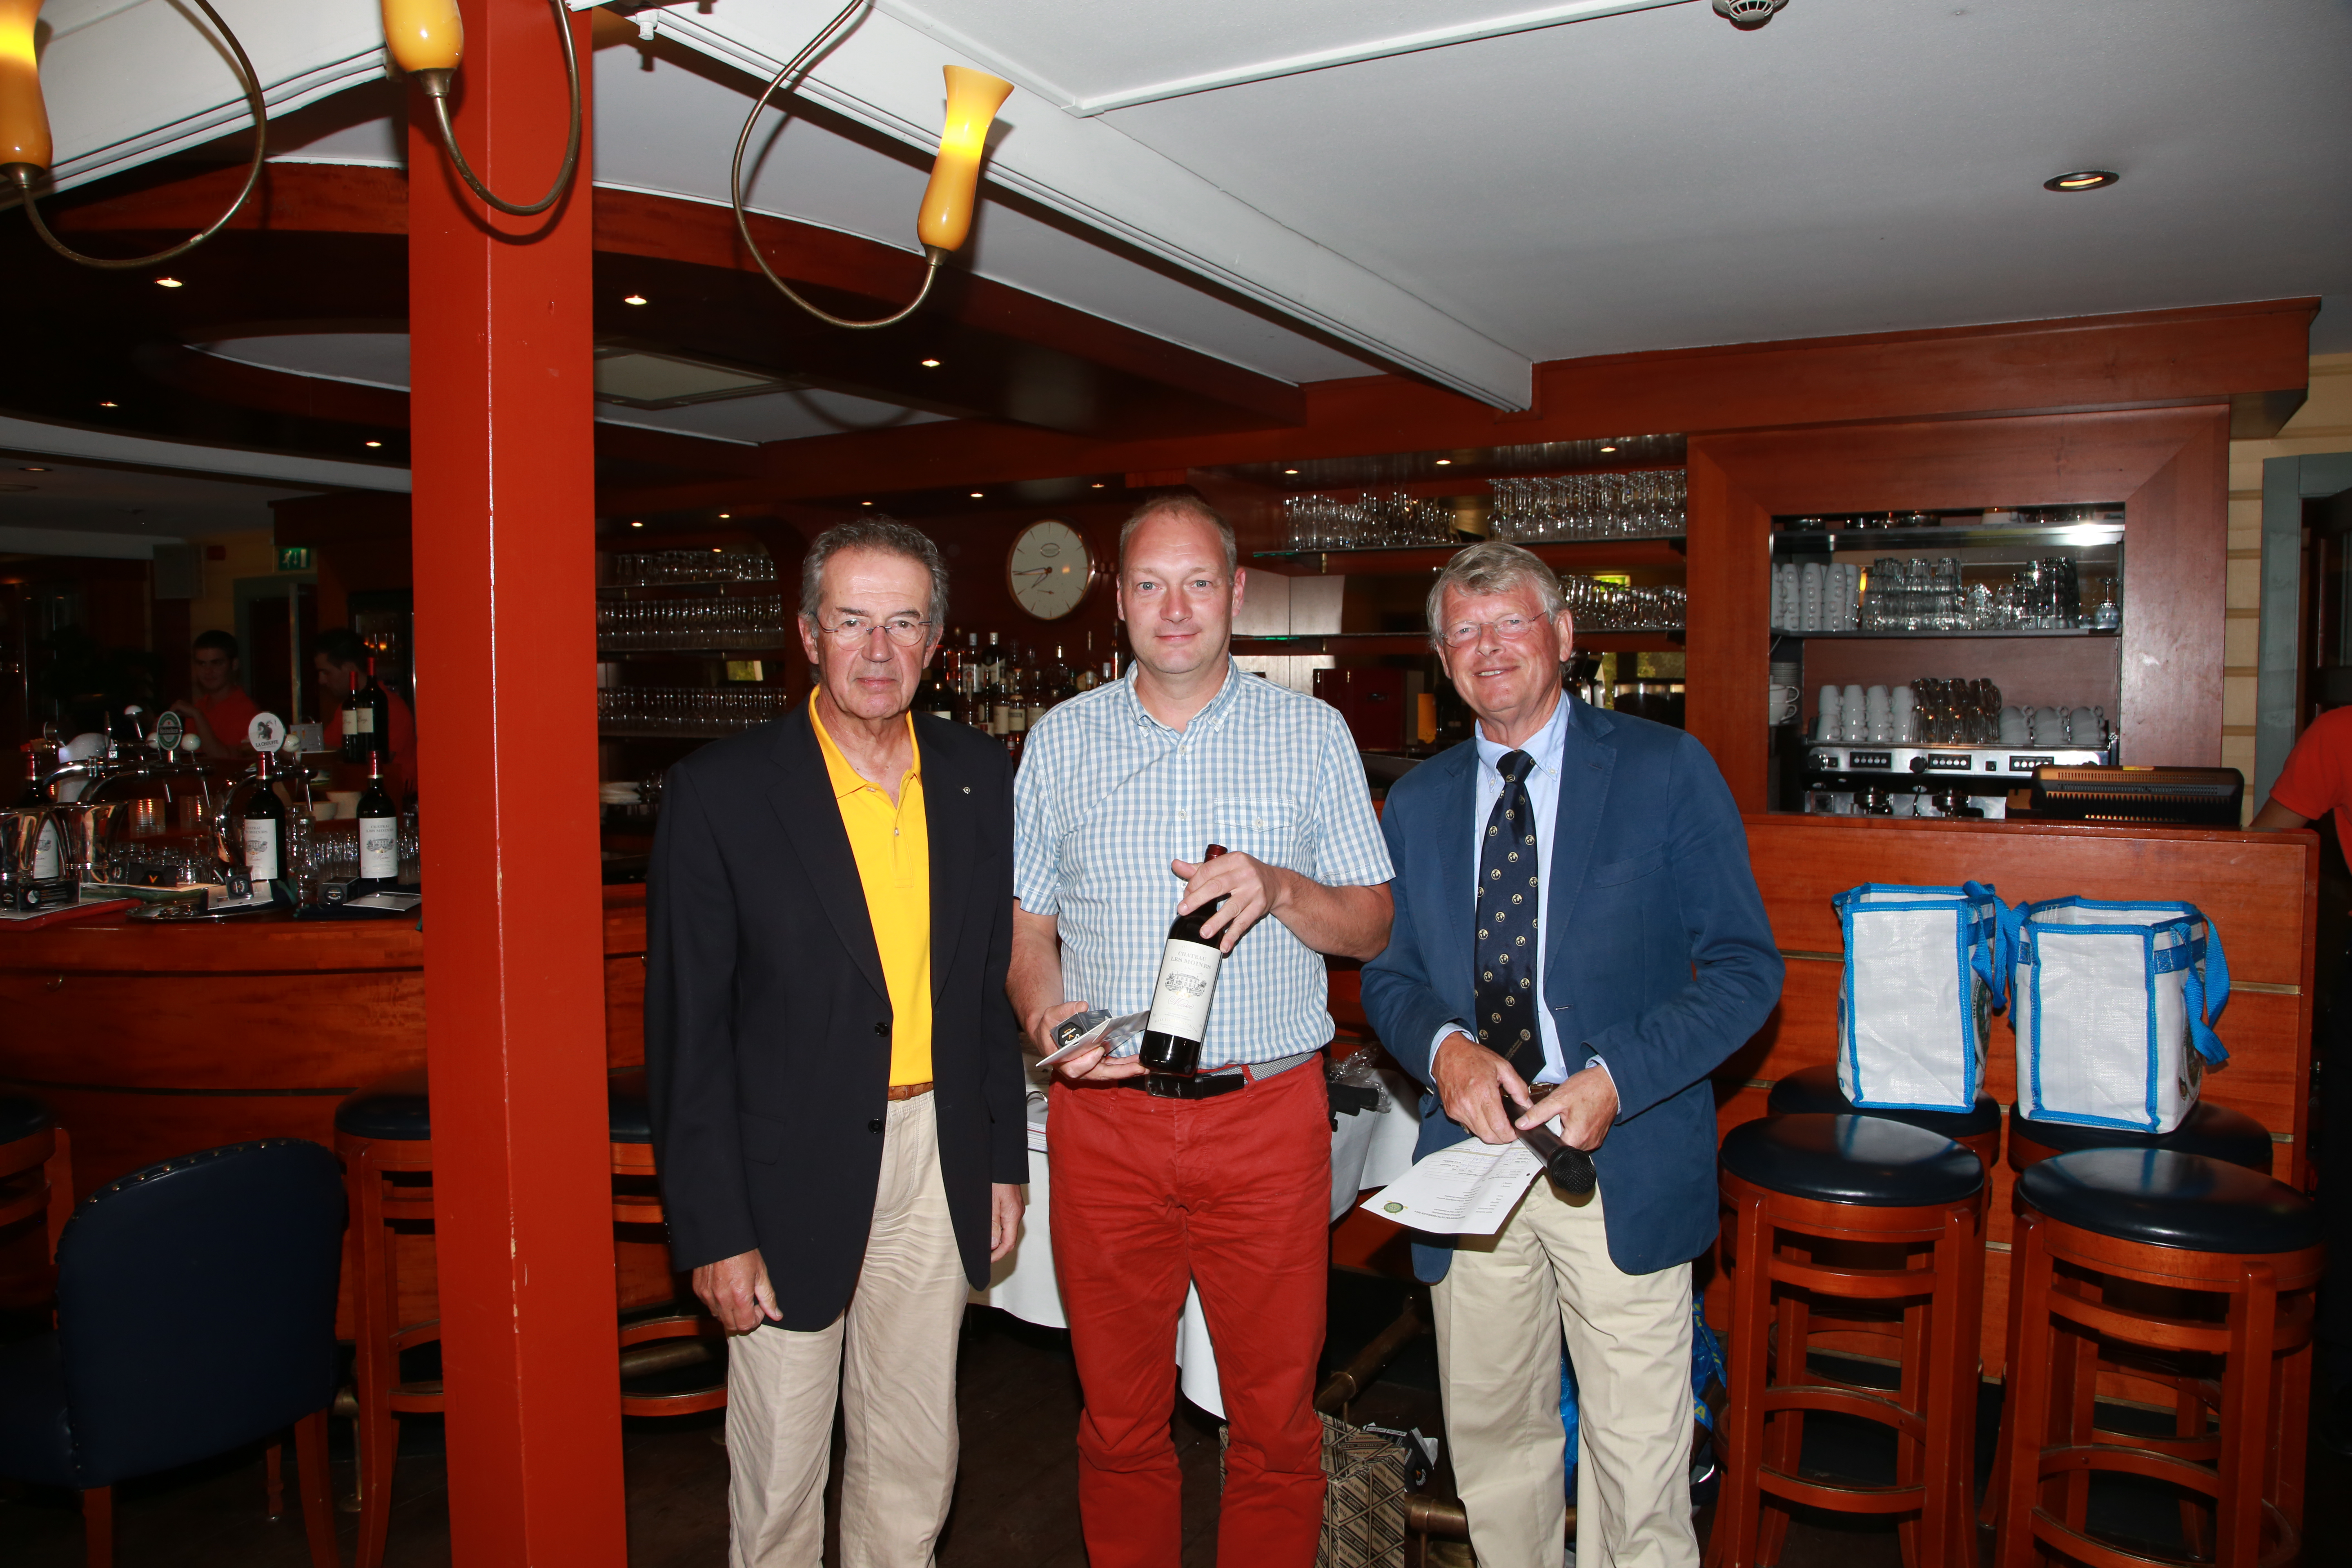 Enrico Hans 3e plaats individueel stableford NK Rotary Golf 2014.